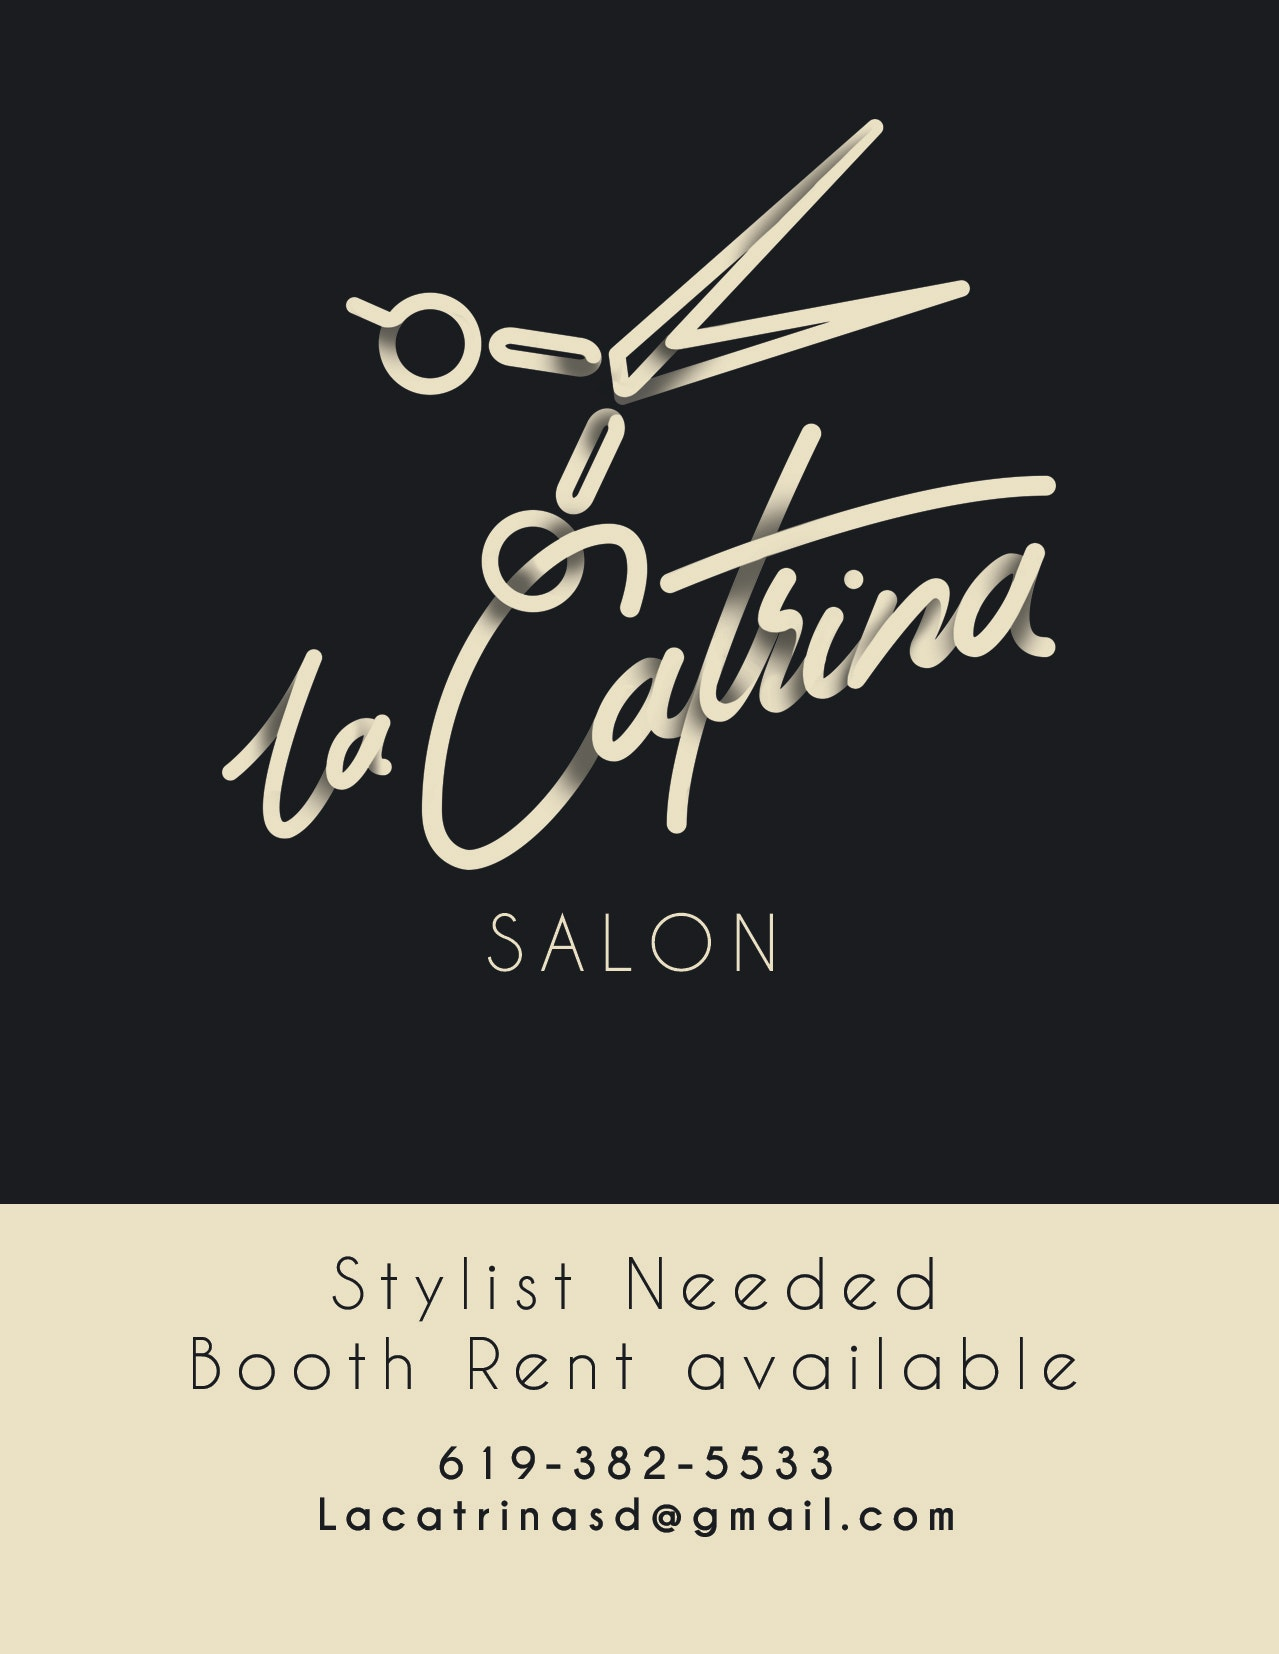 Salon Opening in Hillcrest (San Diego), has available booth rent